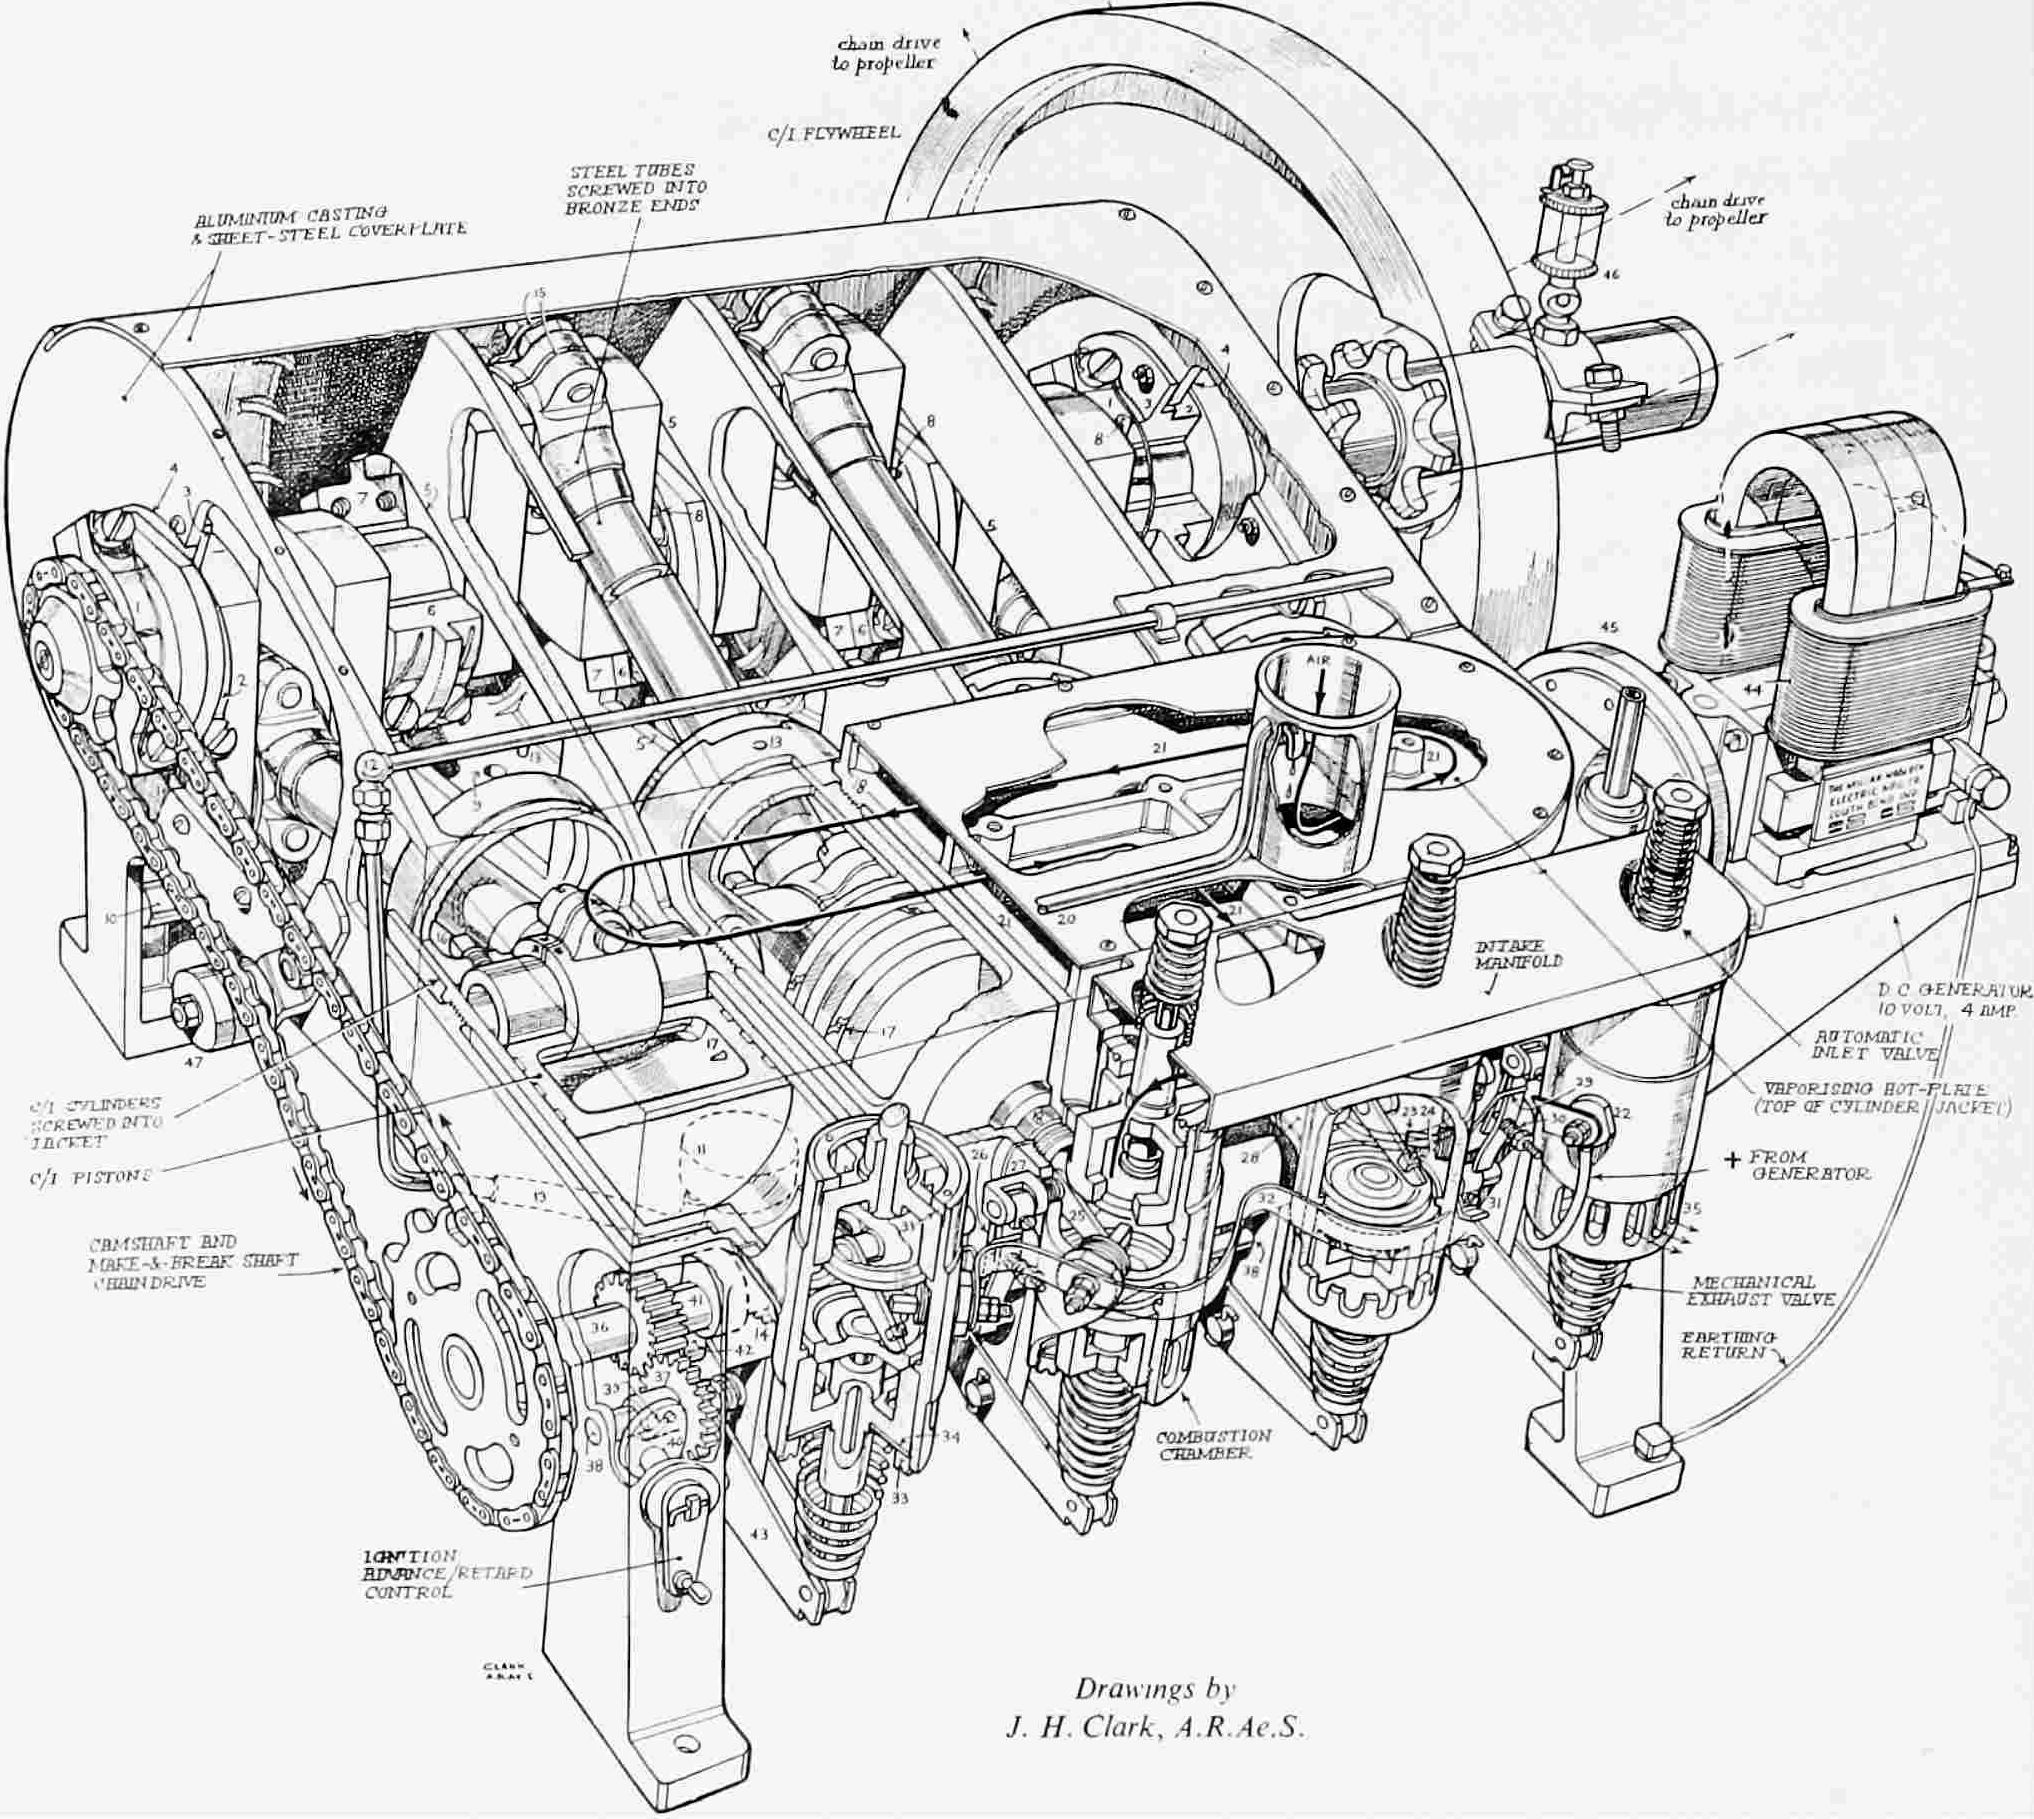 Radial Aircraft Engine Diagram Cutaway Drawings Of Radial Aircraft Engine Diagram